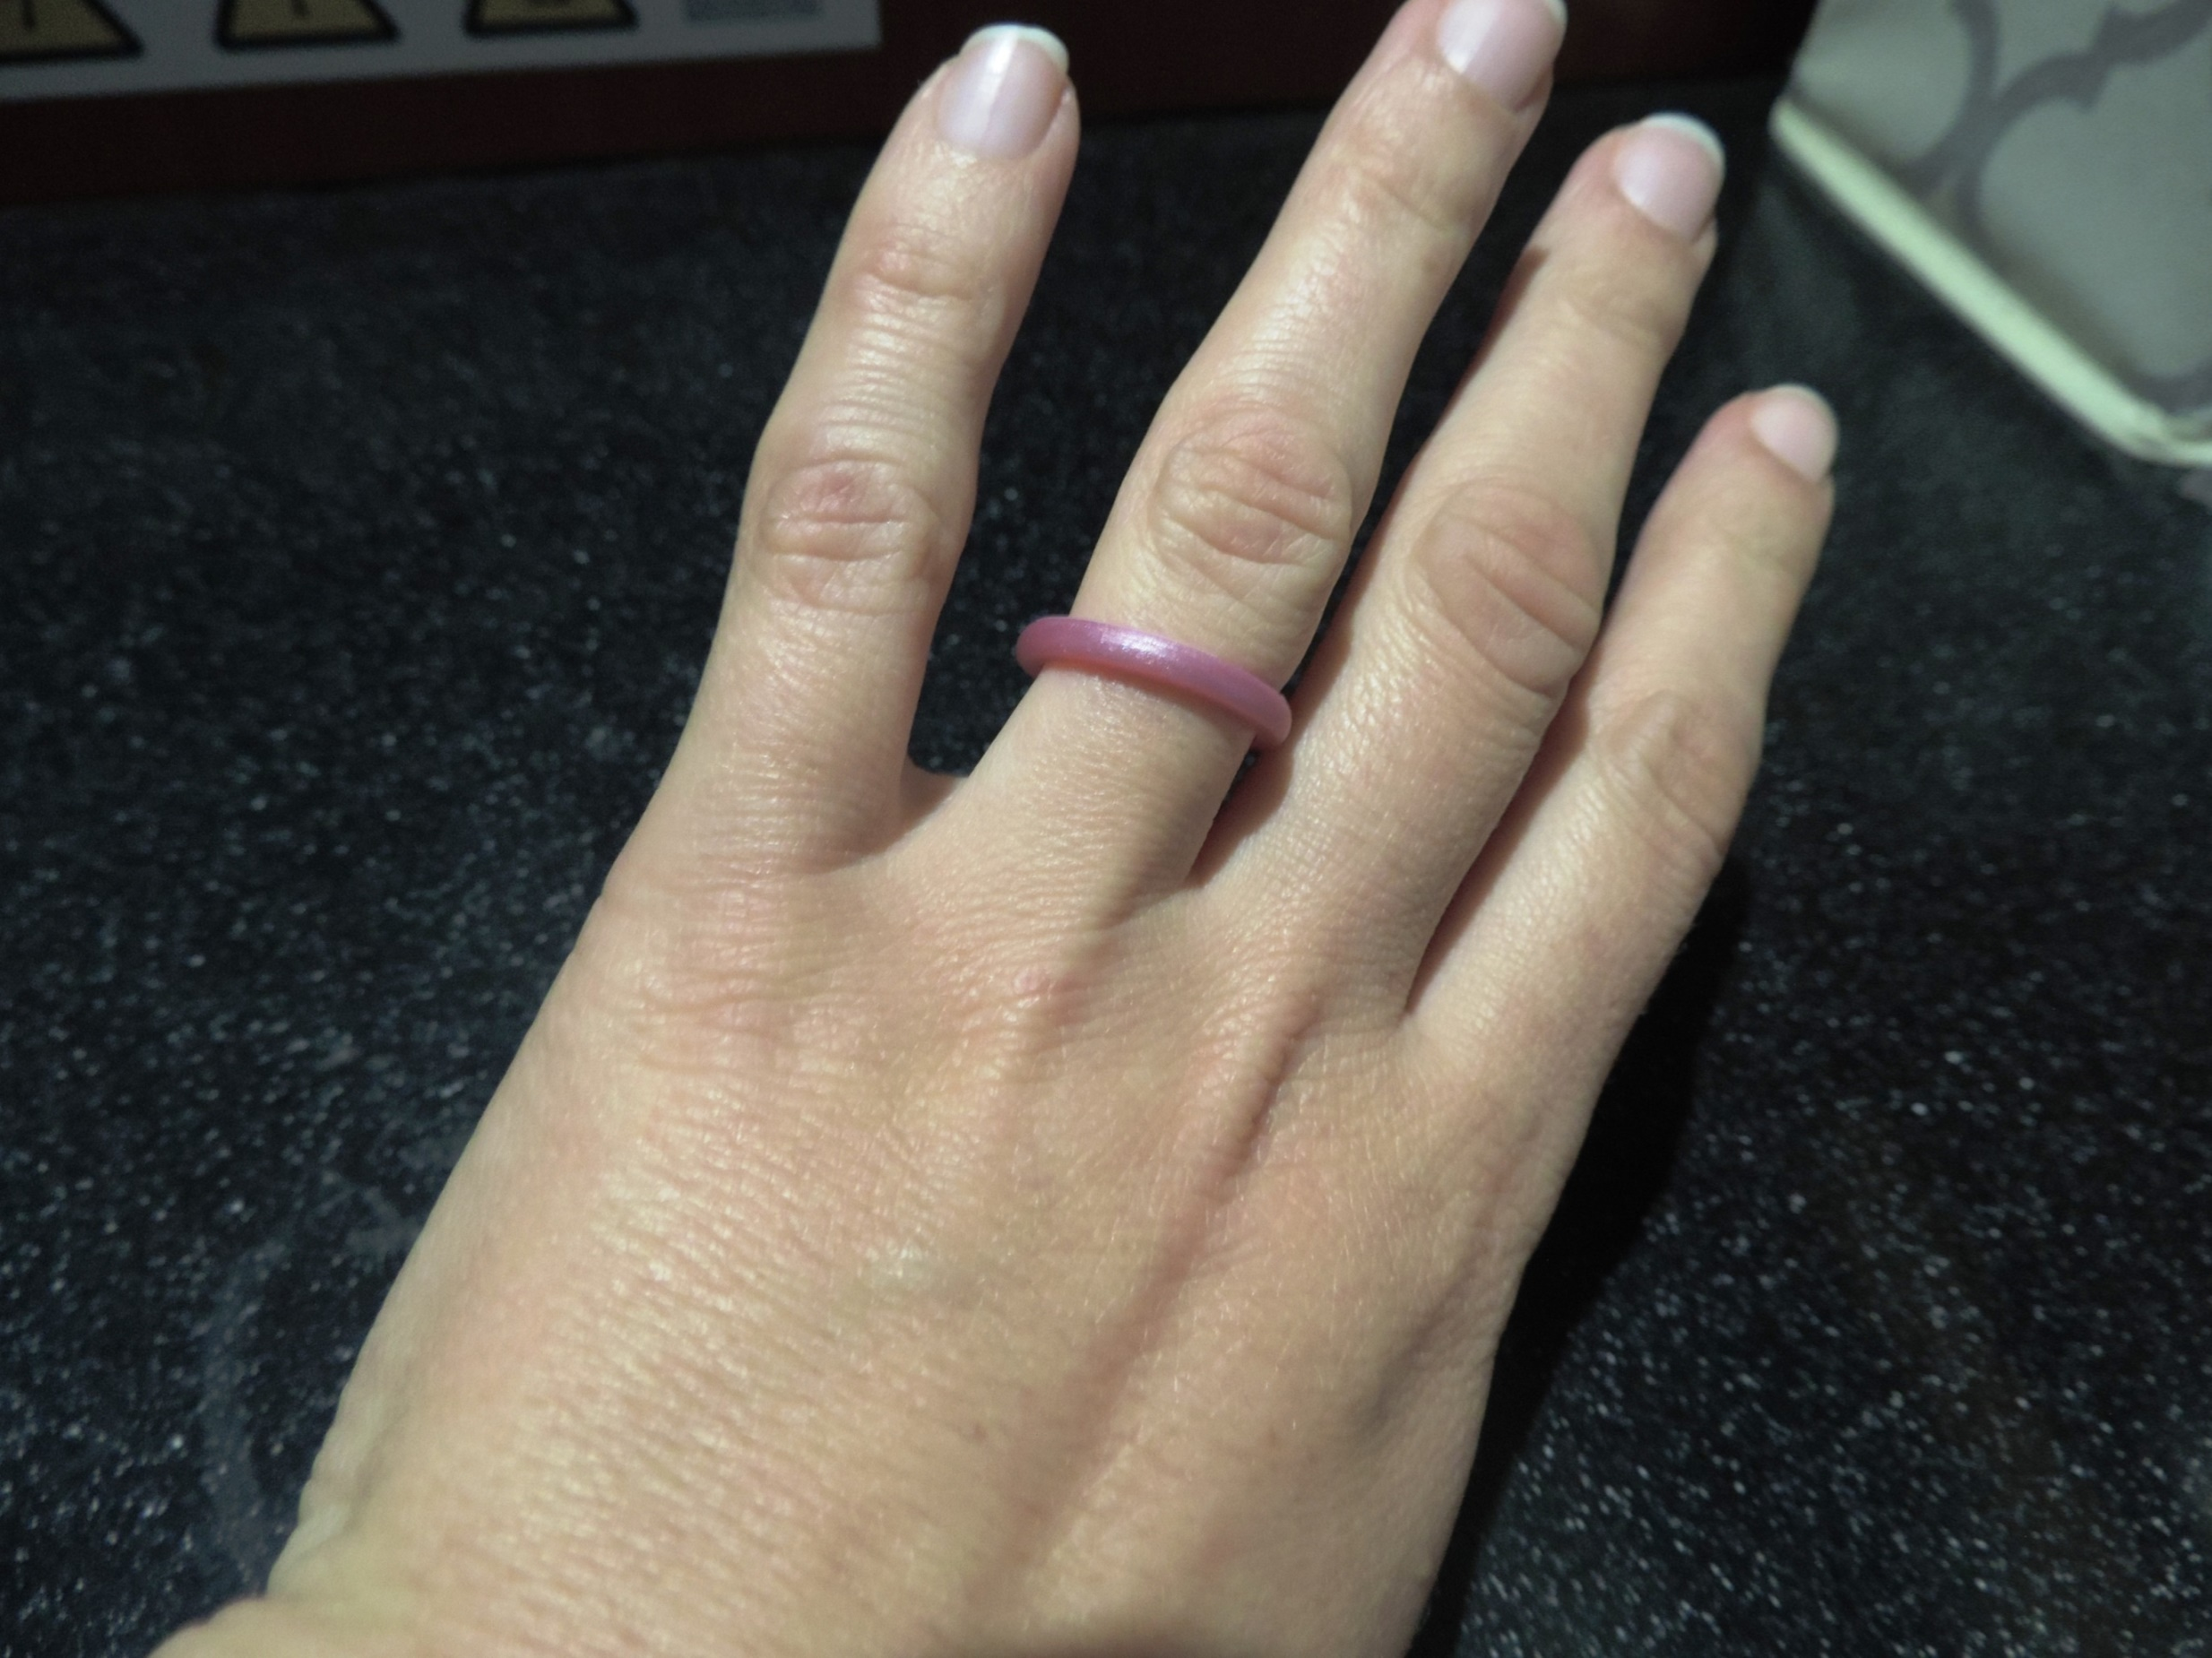 If You Like It Then You Should Put A Silicone Ring On It